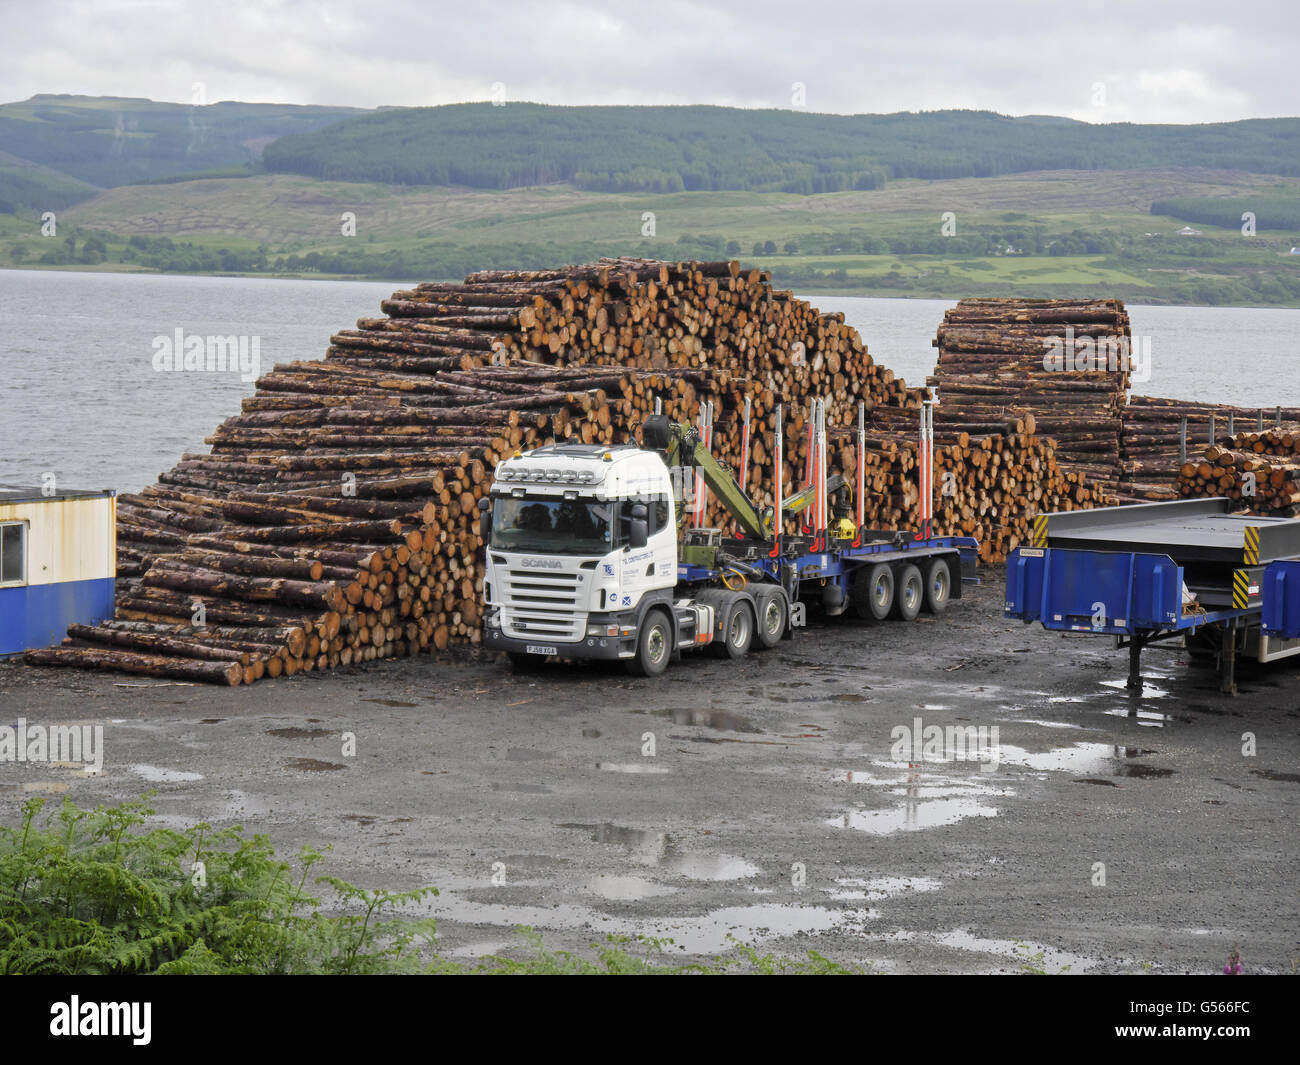 Pile of softwood timber and lorry at port, Isle of Mull, Inner Hebrides, Scotland, July - Stock Image